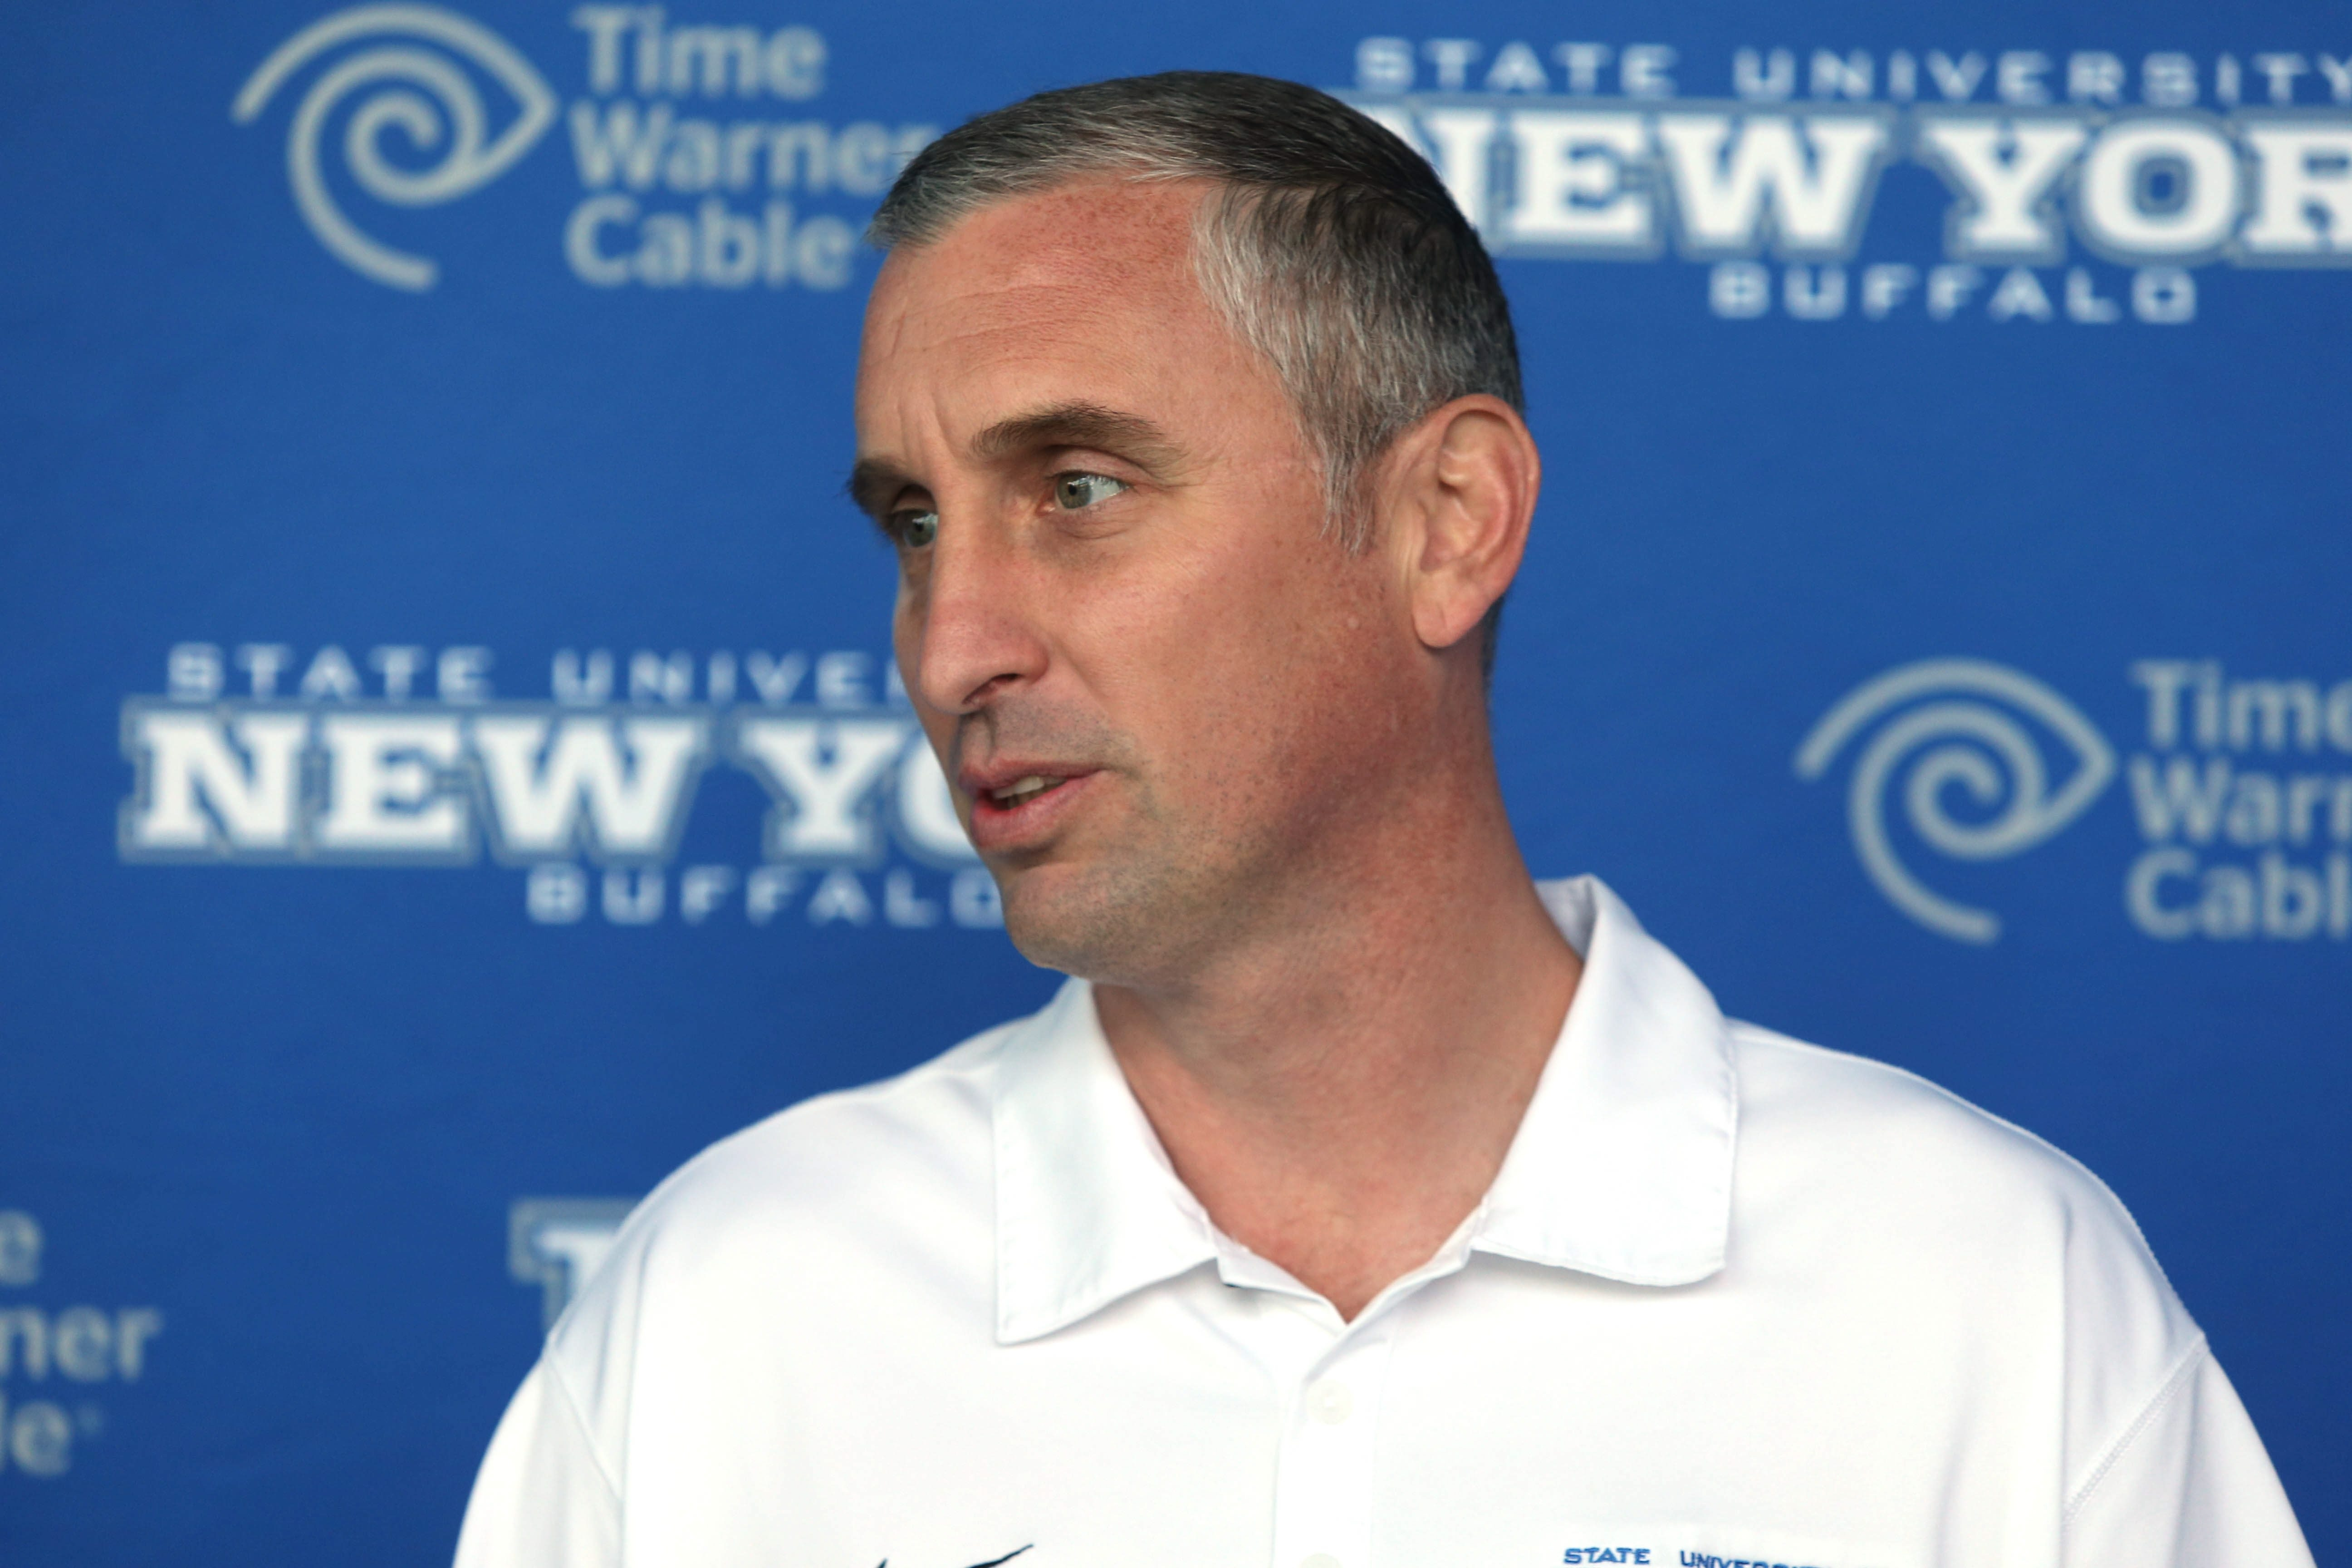 UB basketball coach Bobby Hurley wants his team to make some history in the future.